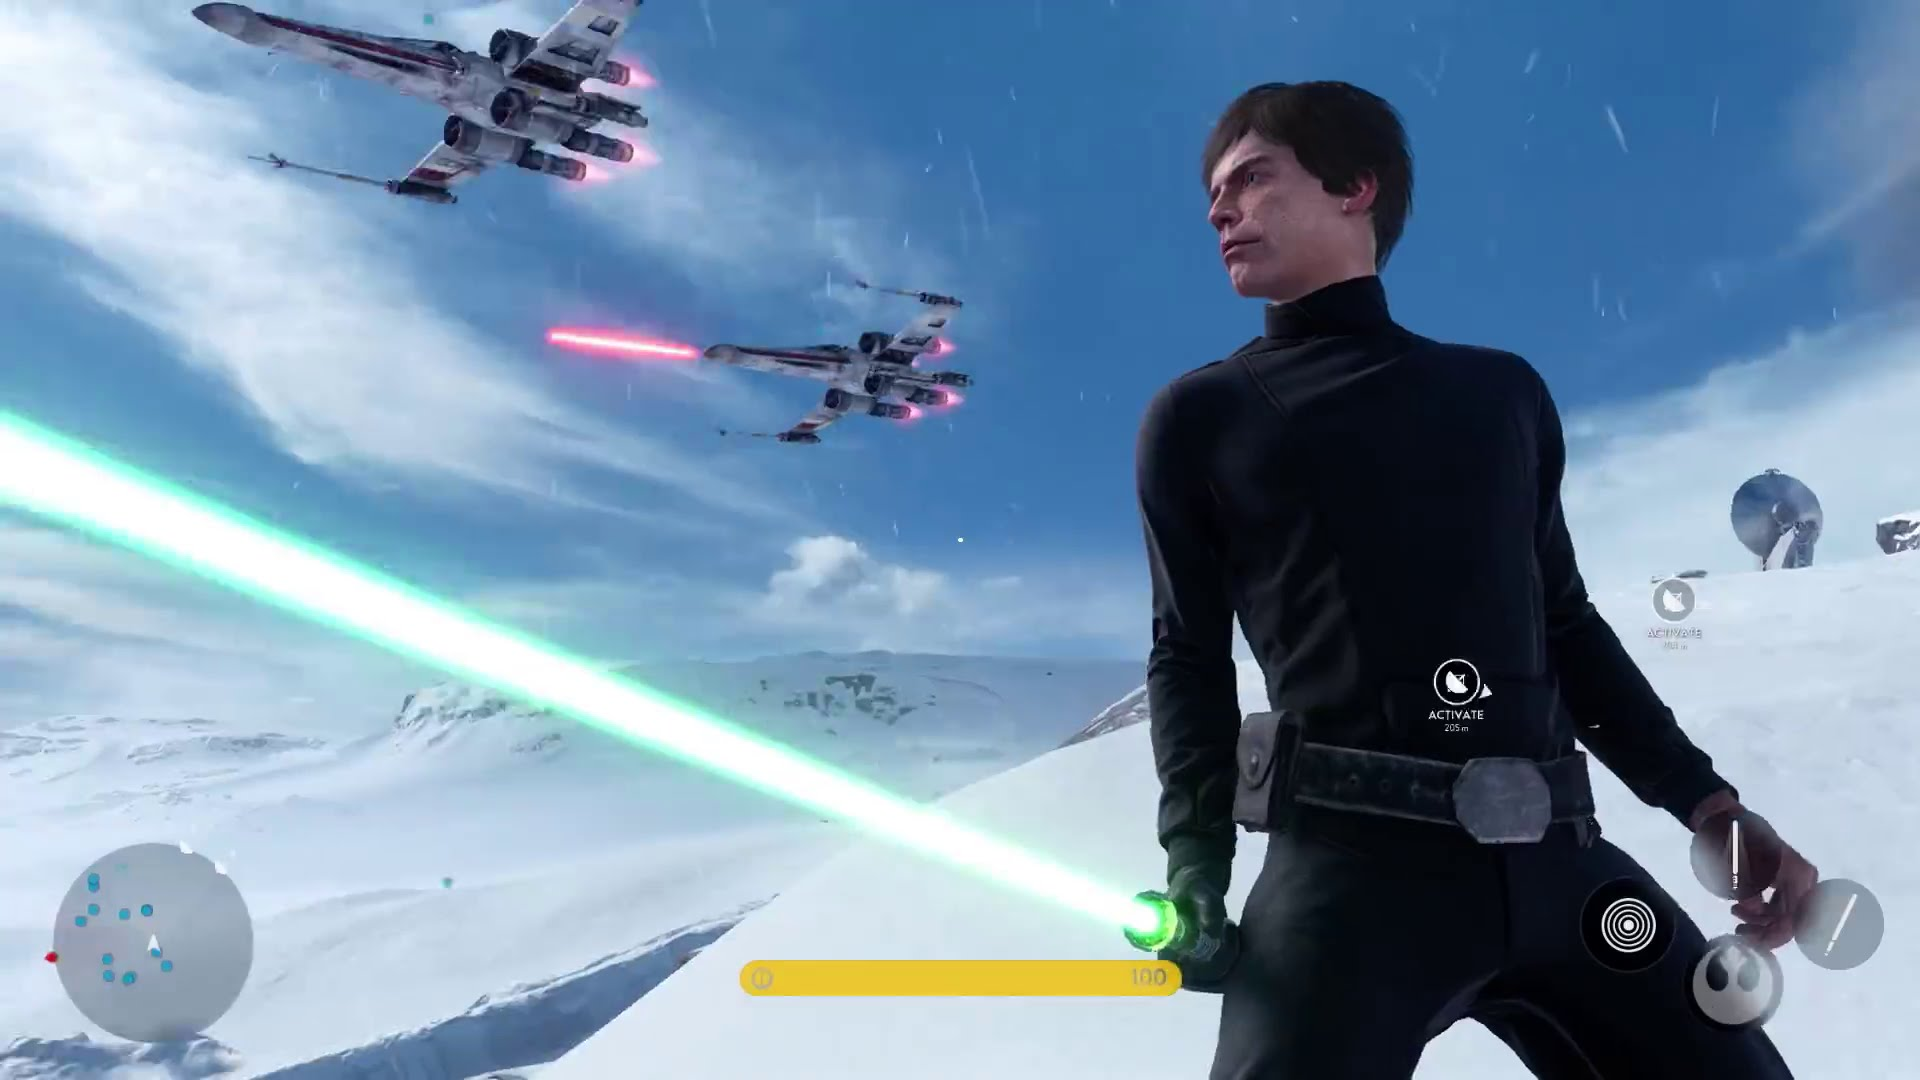 maxresdefault 26 Star Wars Battlefront Finally Gets The Hero It Deserves